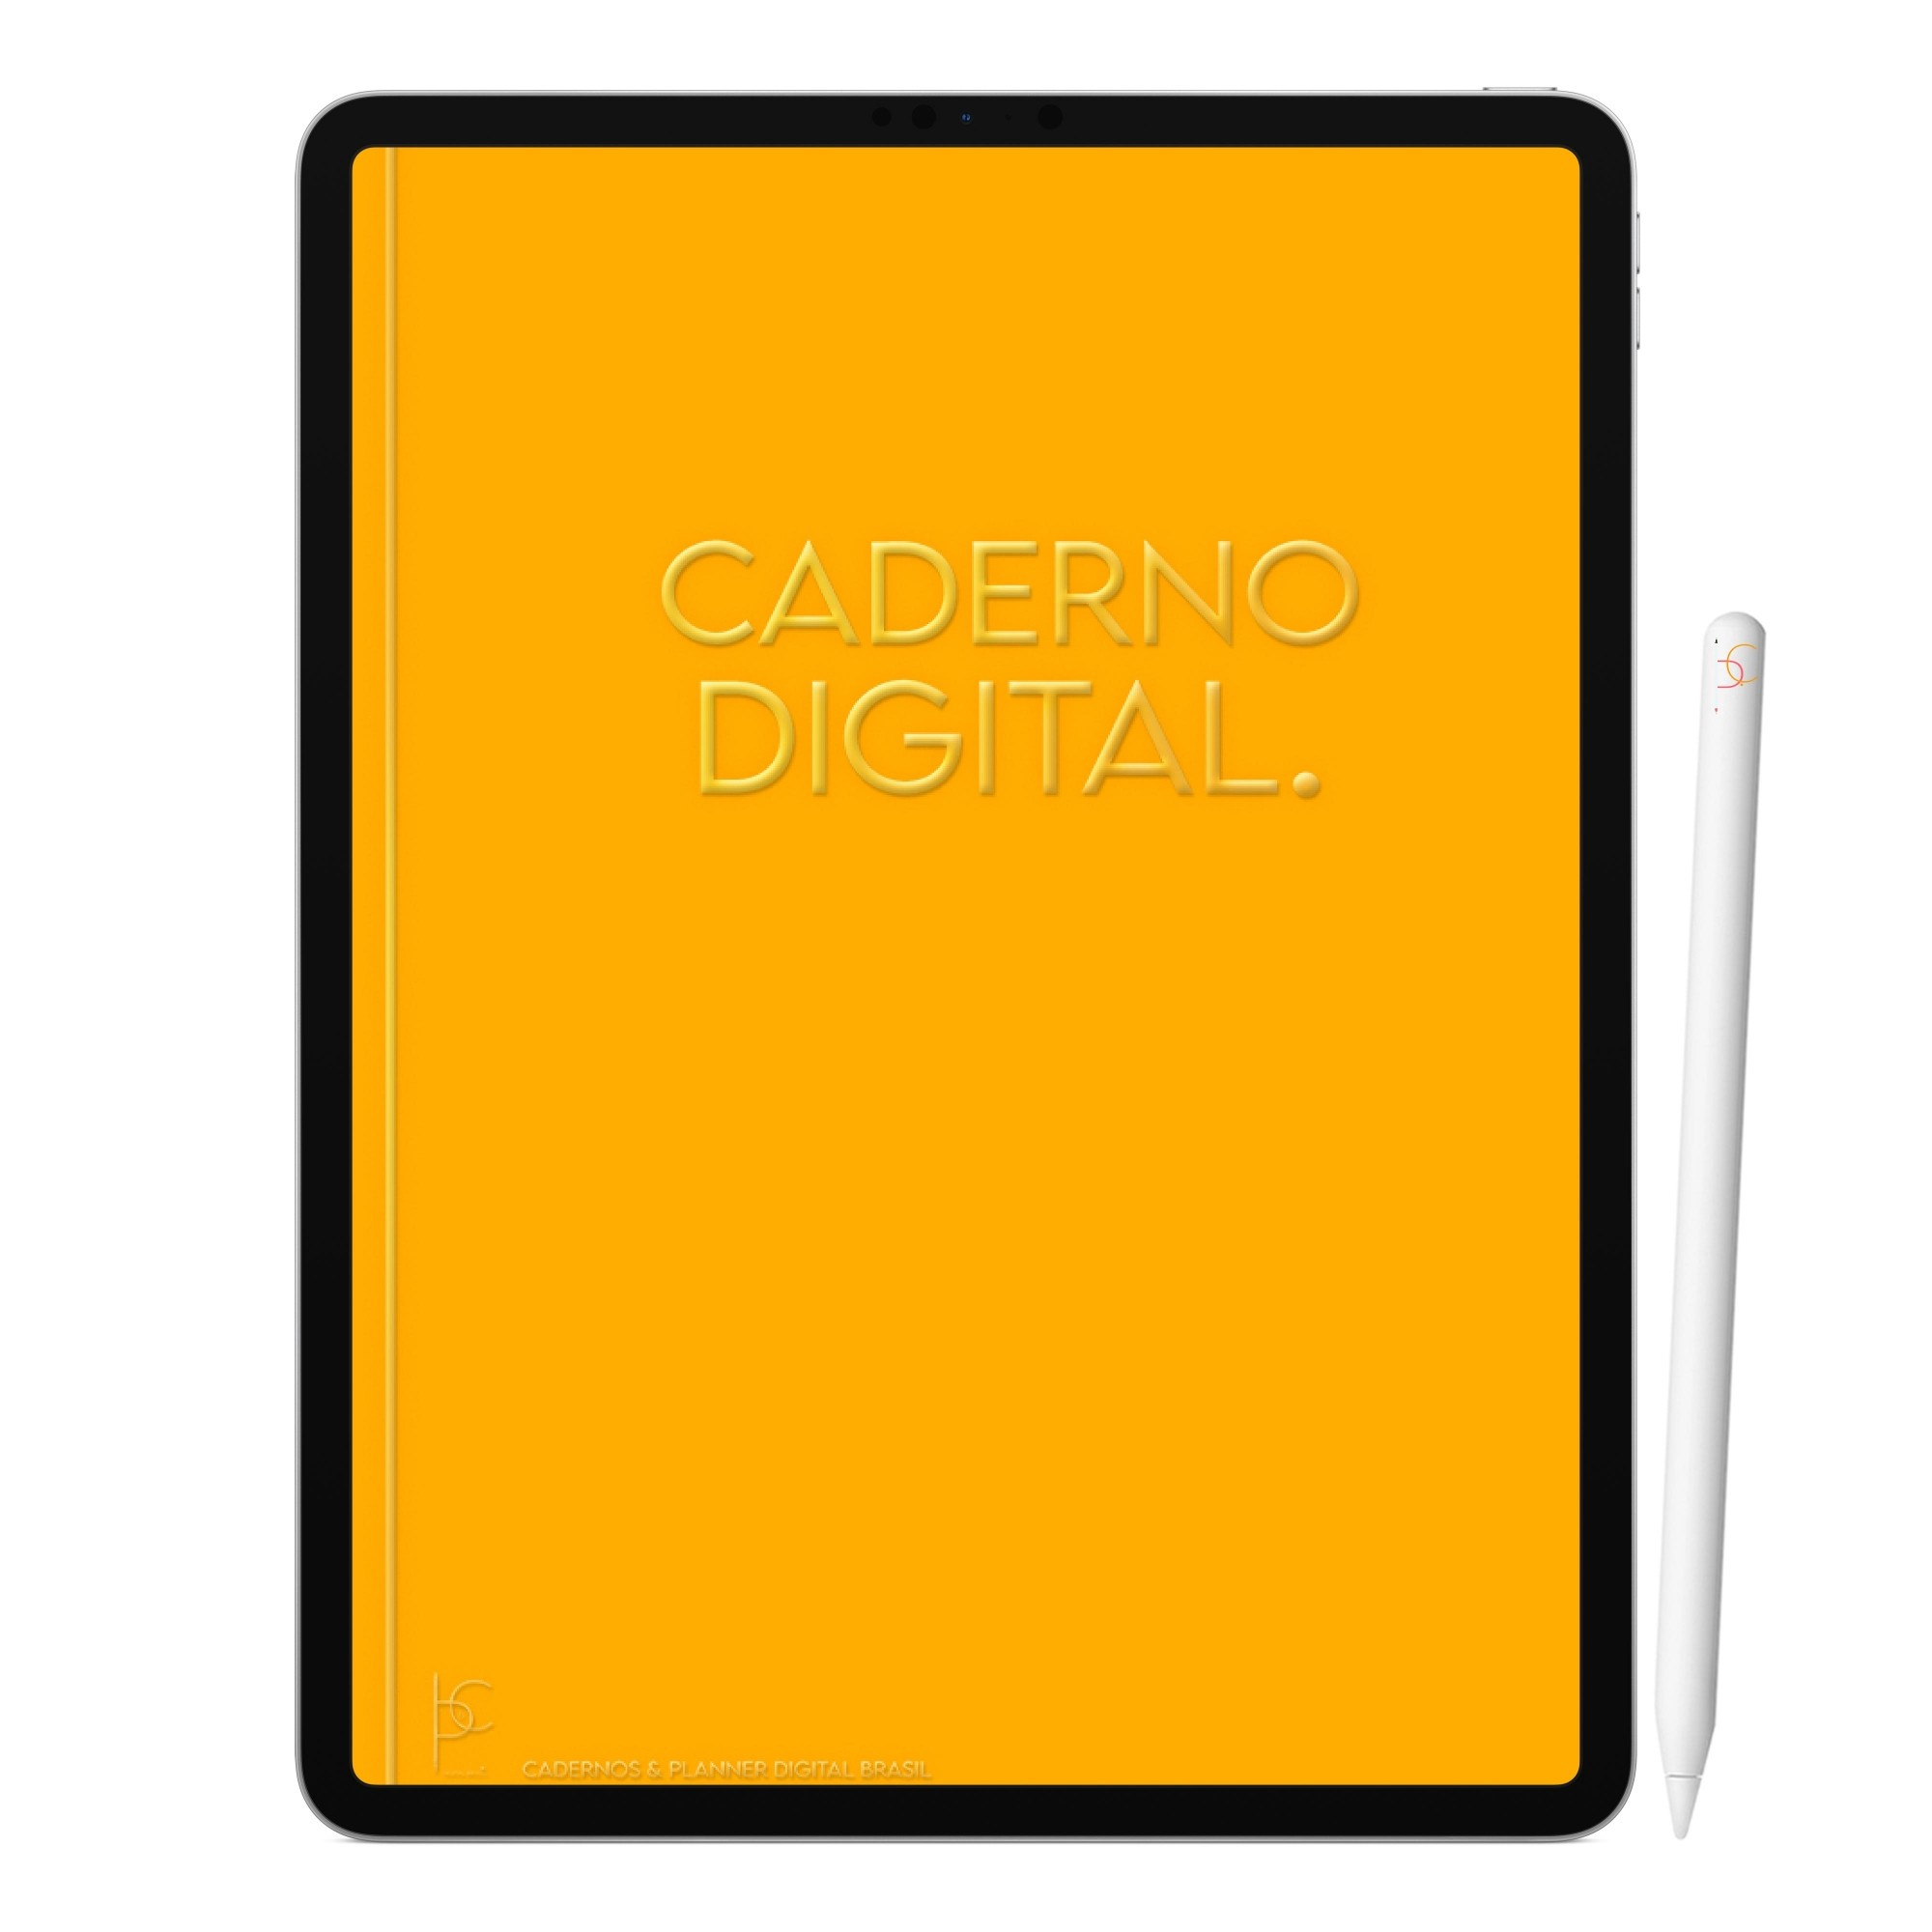 Caderno Digital Raios de Sol | Seis Divisórias Interativo| iPad Tablet | Download Instantâneo